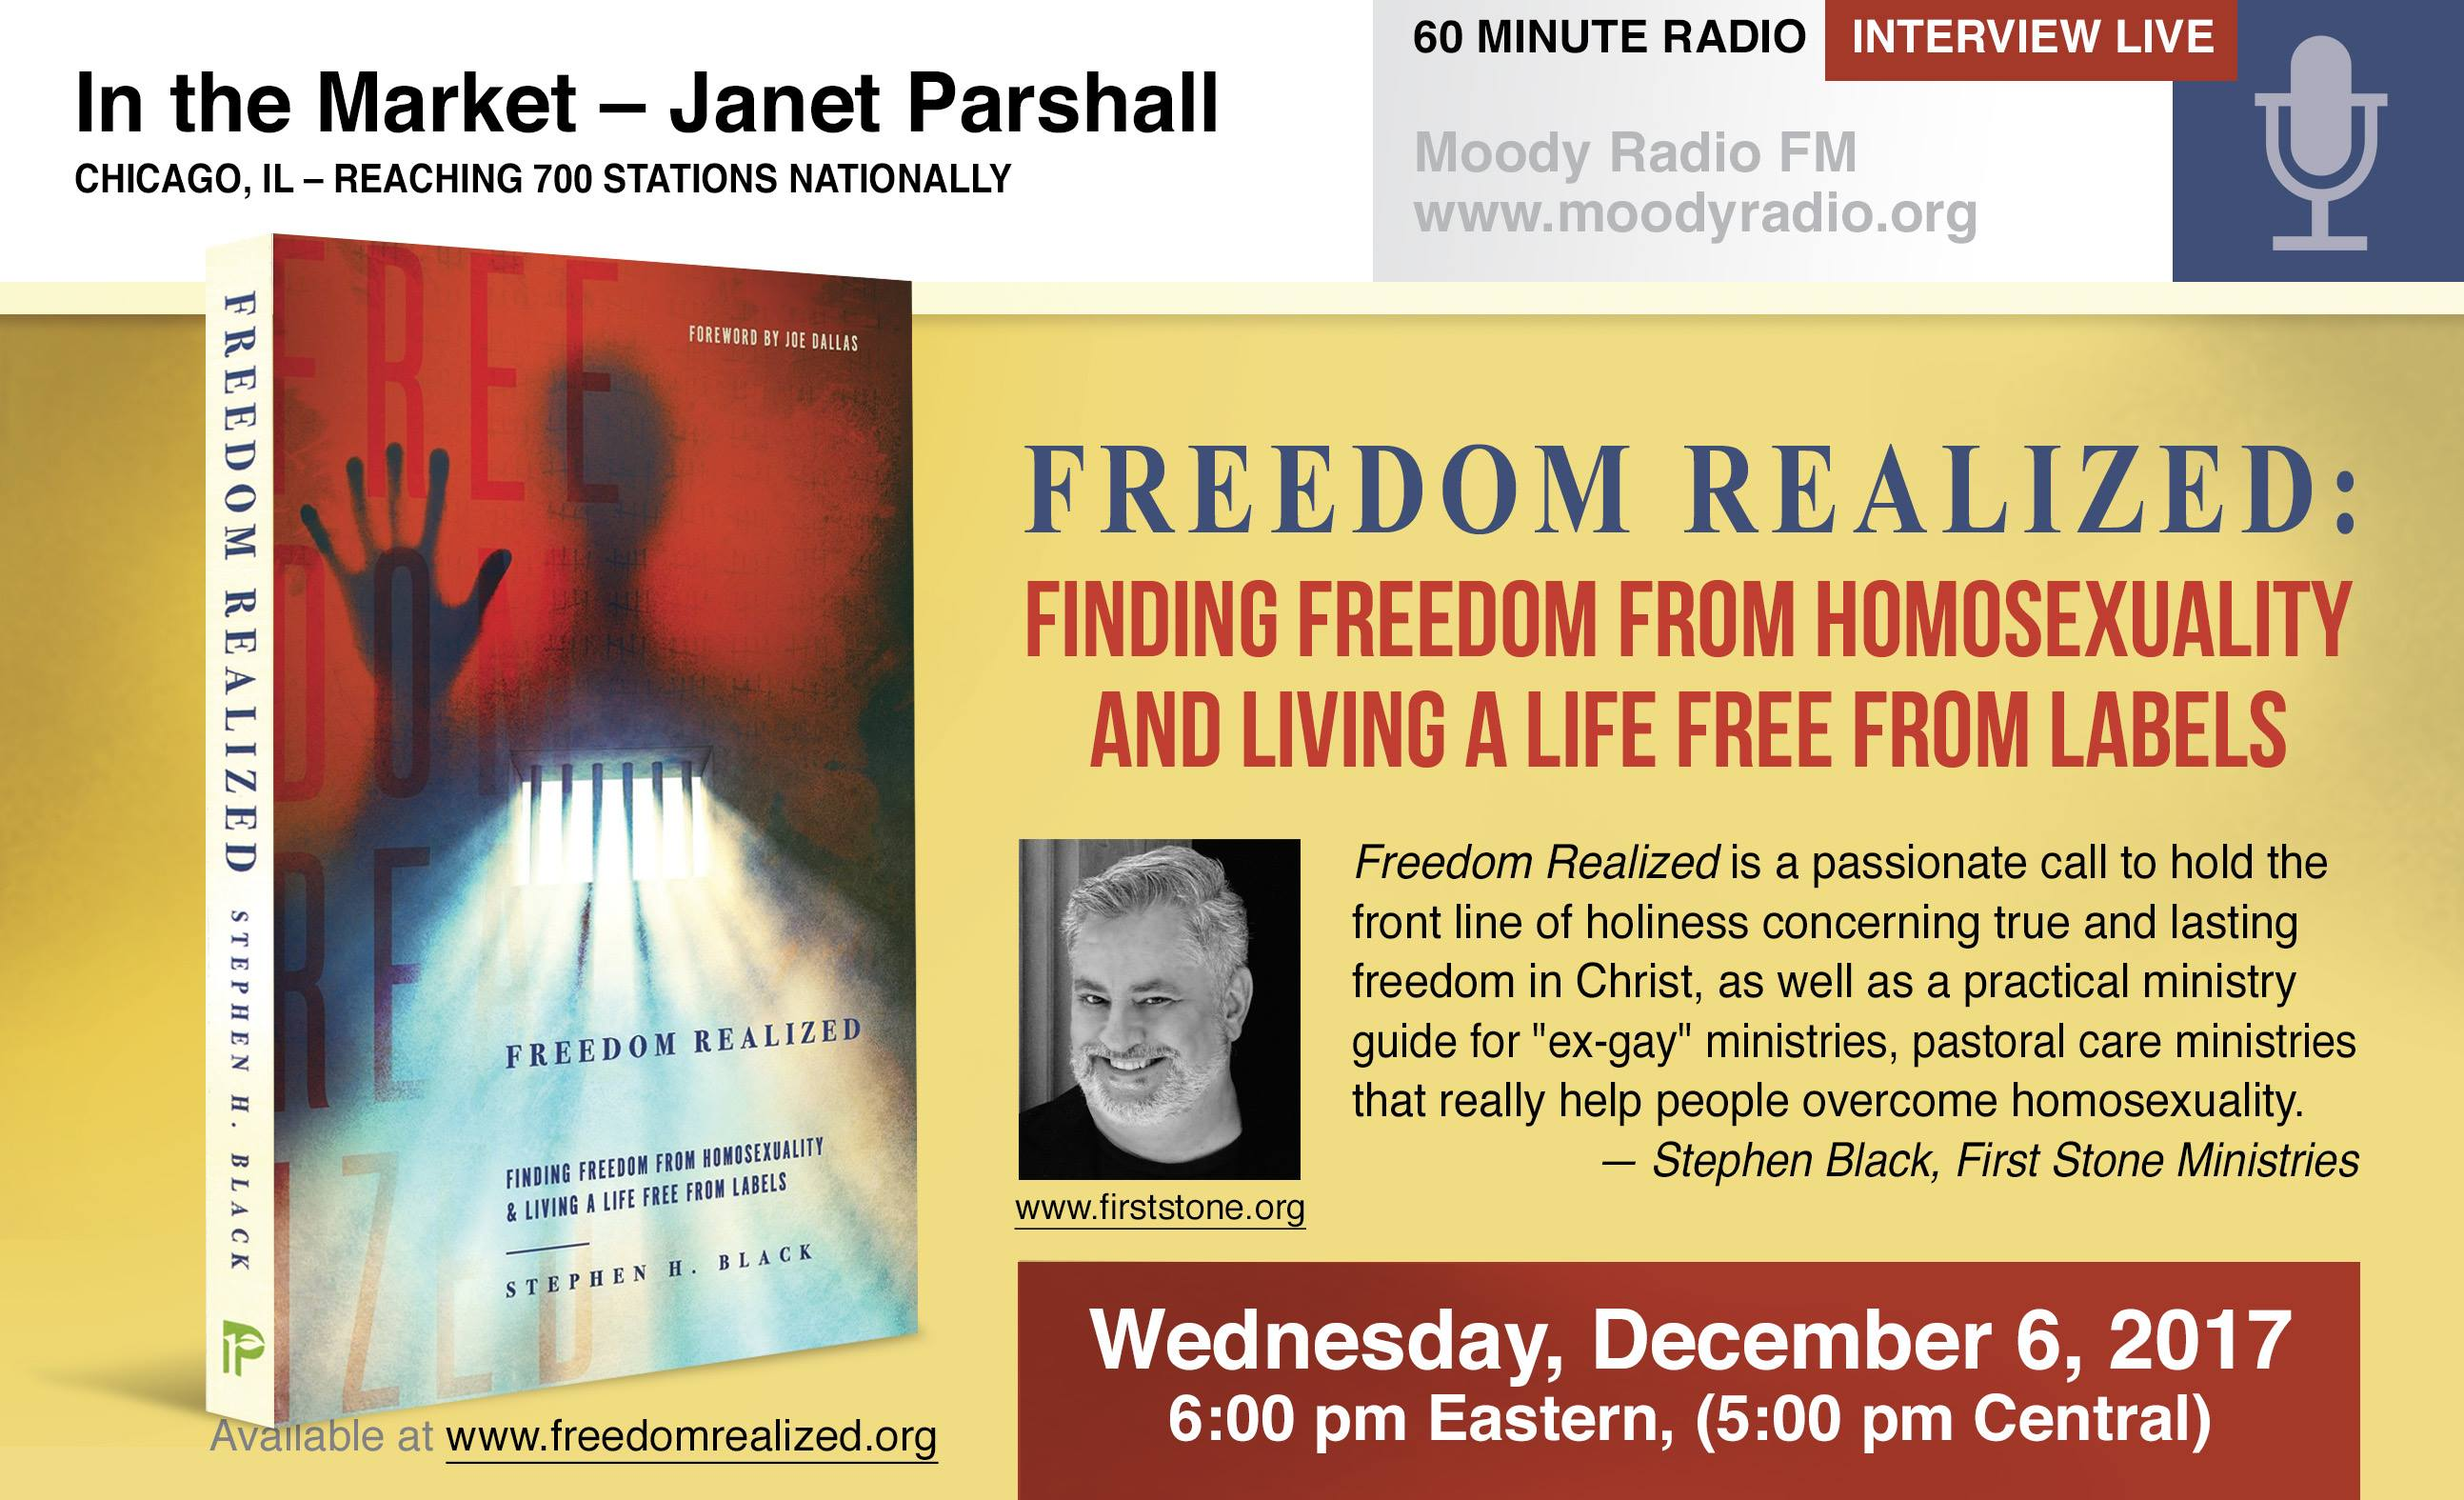 10 - FR_Ad_In_the_Market-Janet-Parshal_Interview - Dec6